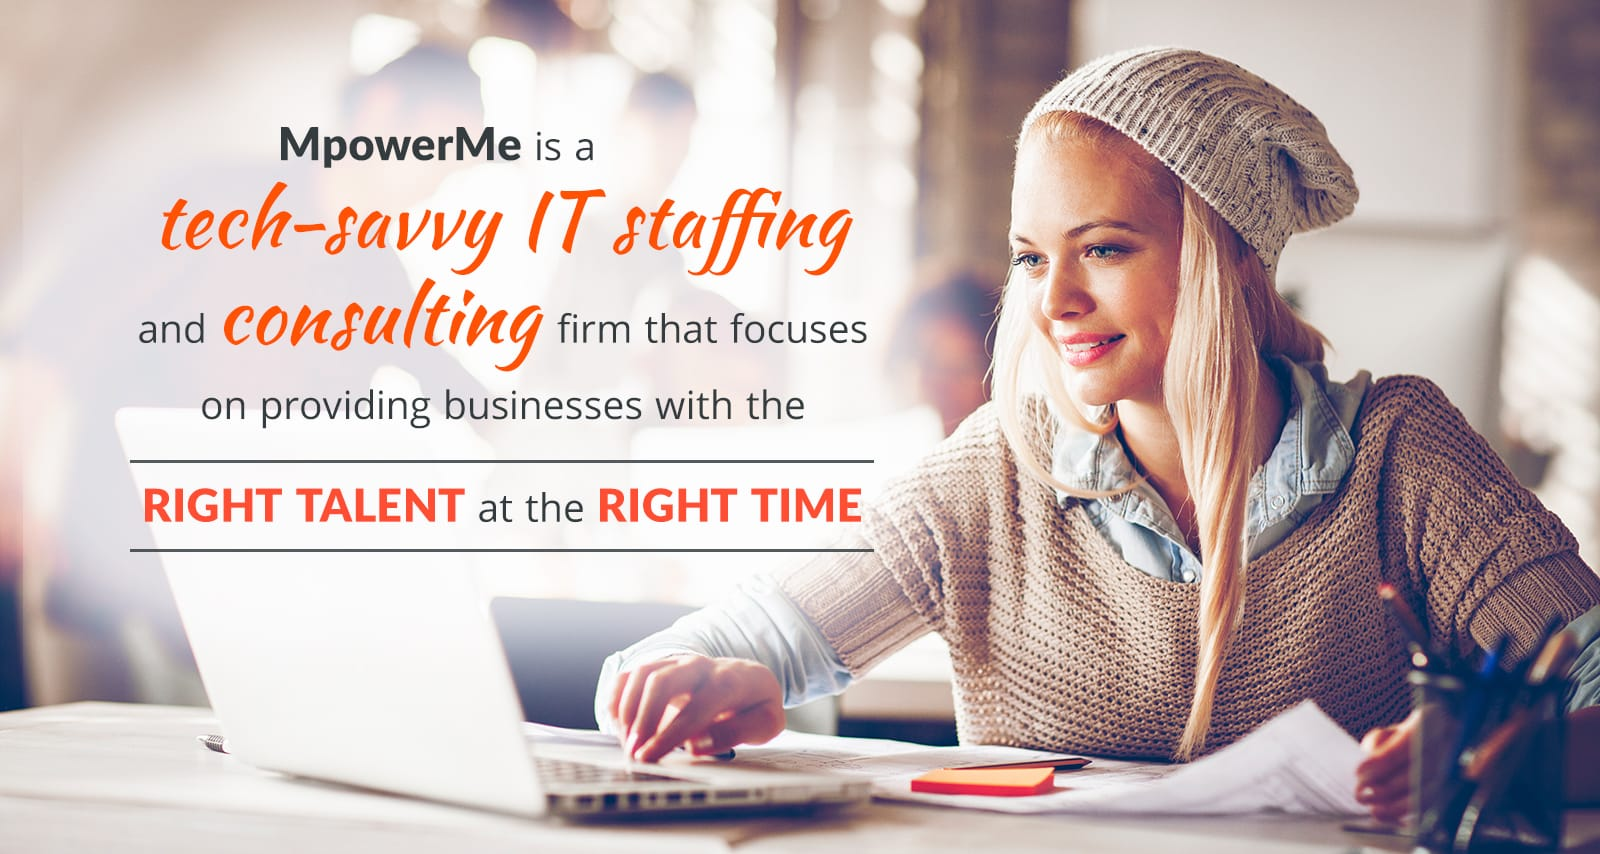 MpowerMe is a tech-savvy IT recruiting and staffing agency